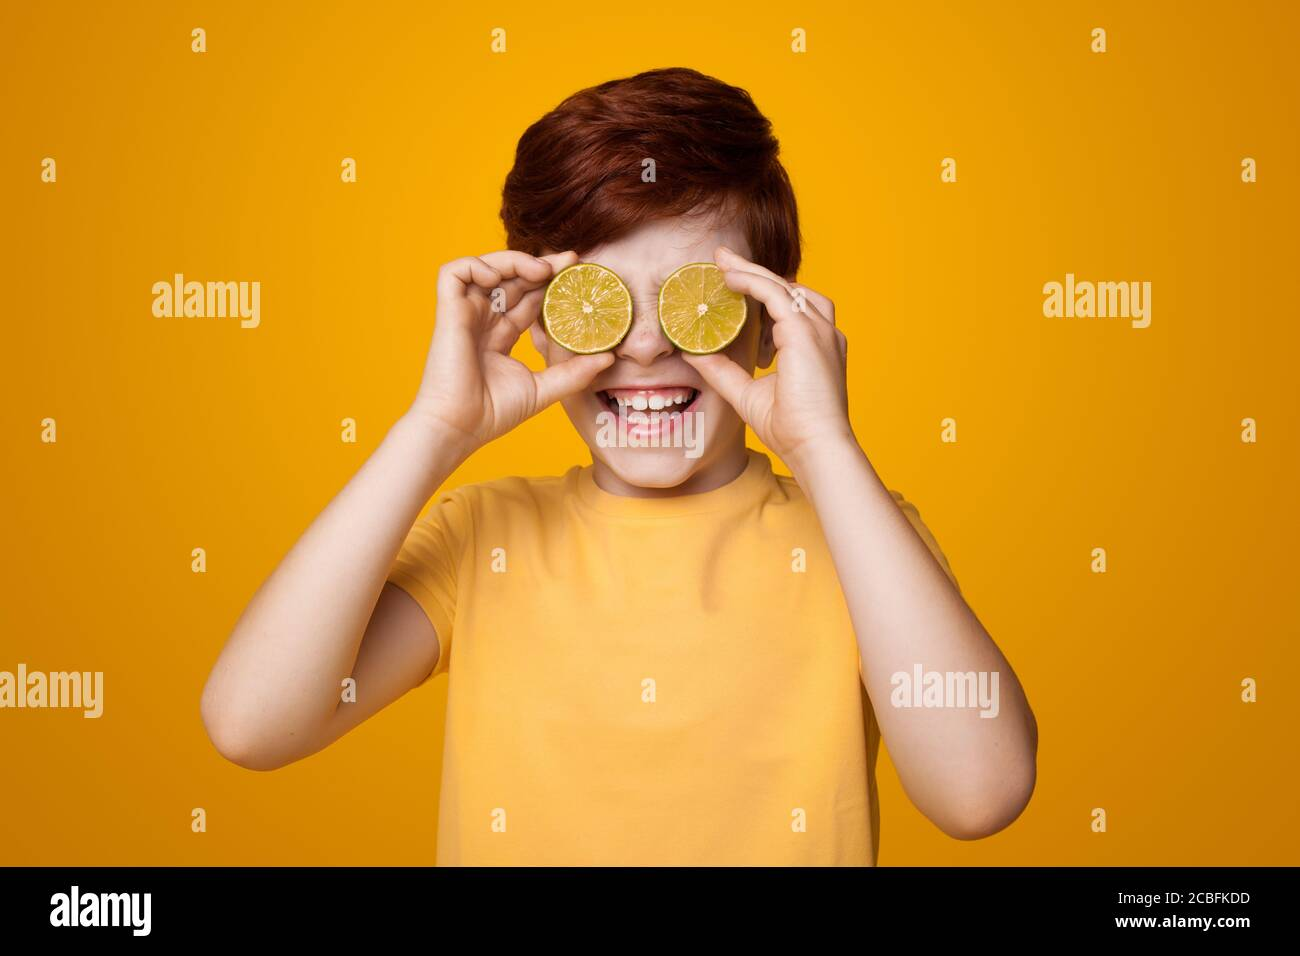 Happy ginger boy covering his eyes with lemons and smile on a yellow studio wall Stock Photo